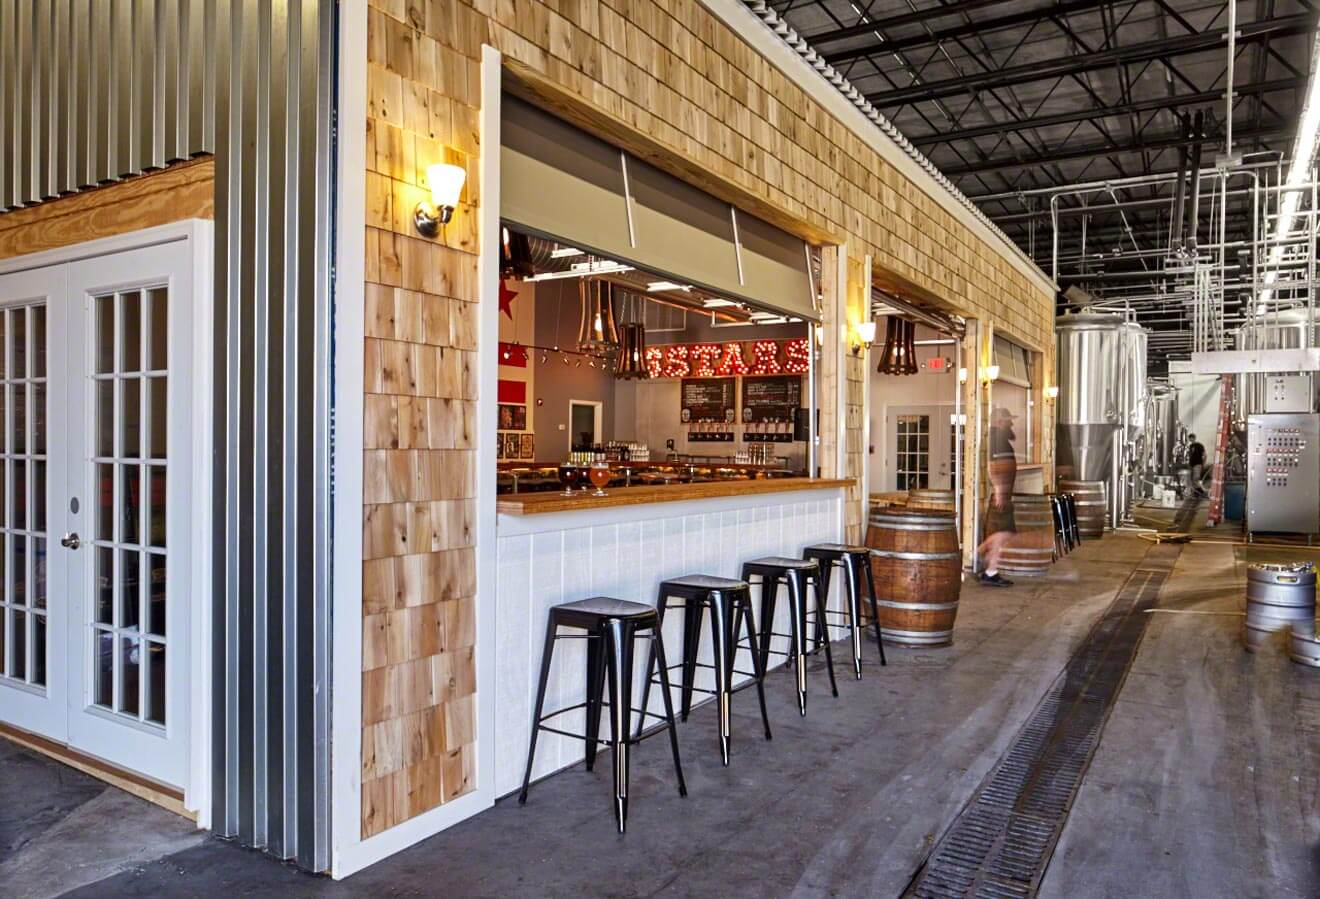 3 Stars Brewery Opens its Doors in Washington D.C.